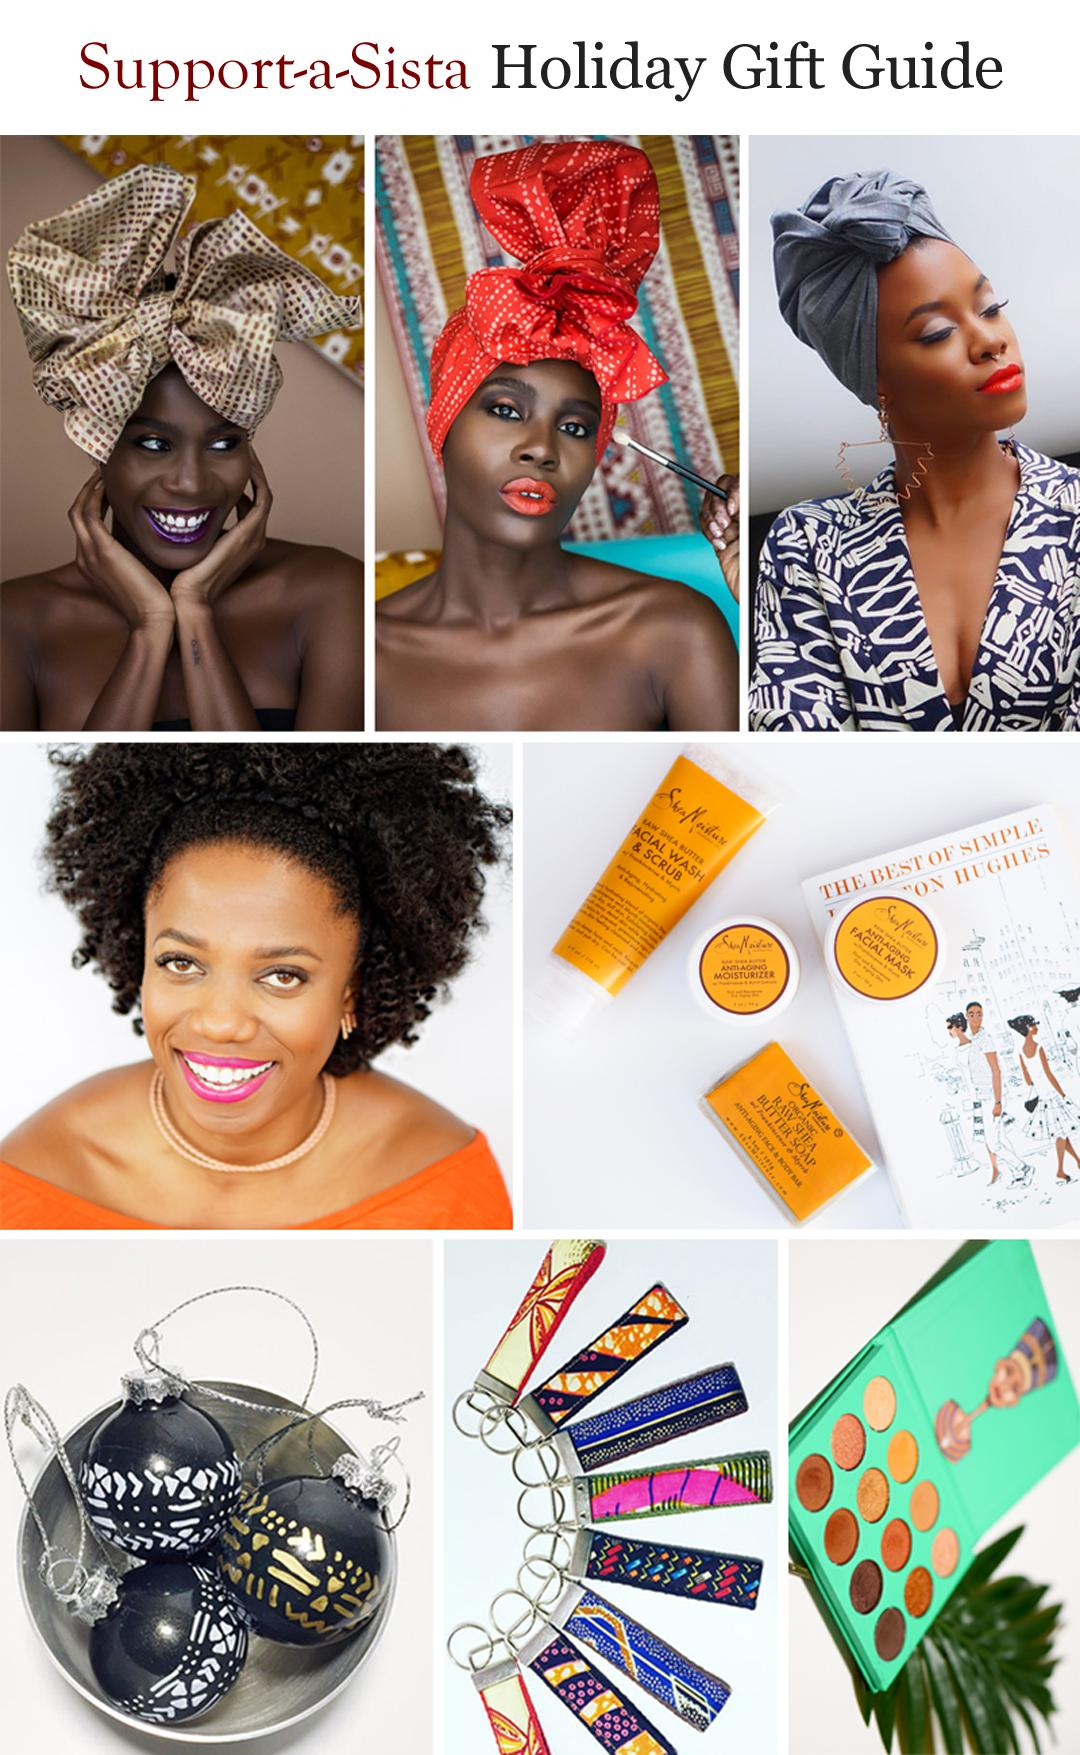 support-a-sista-holiday-gift-guide